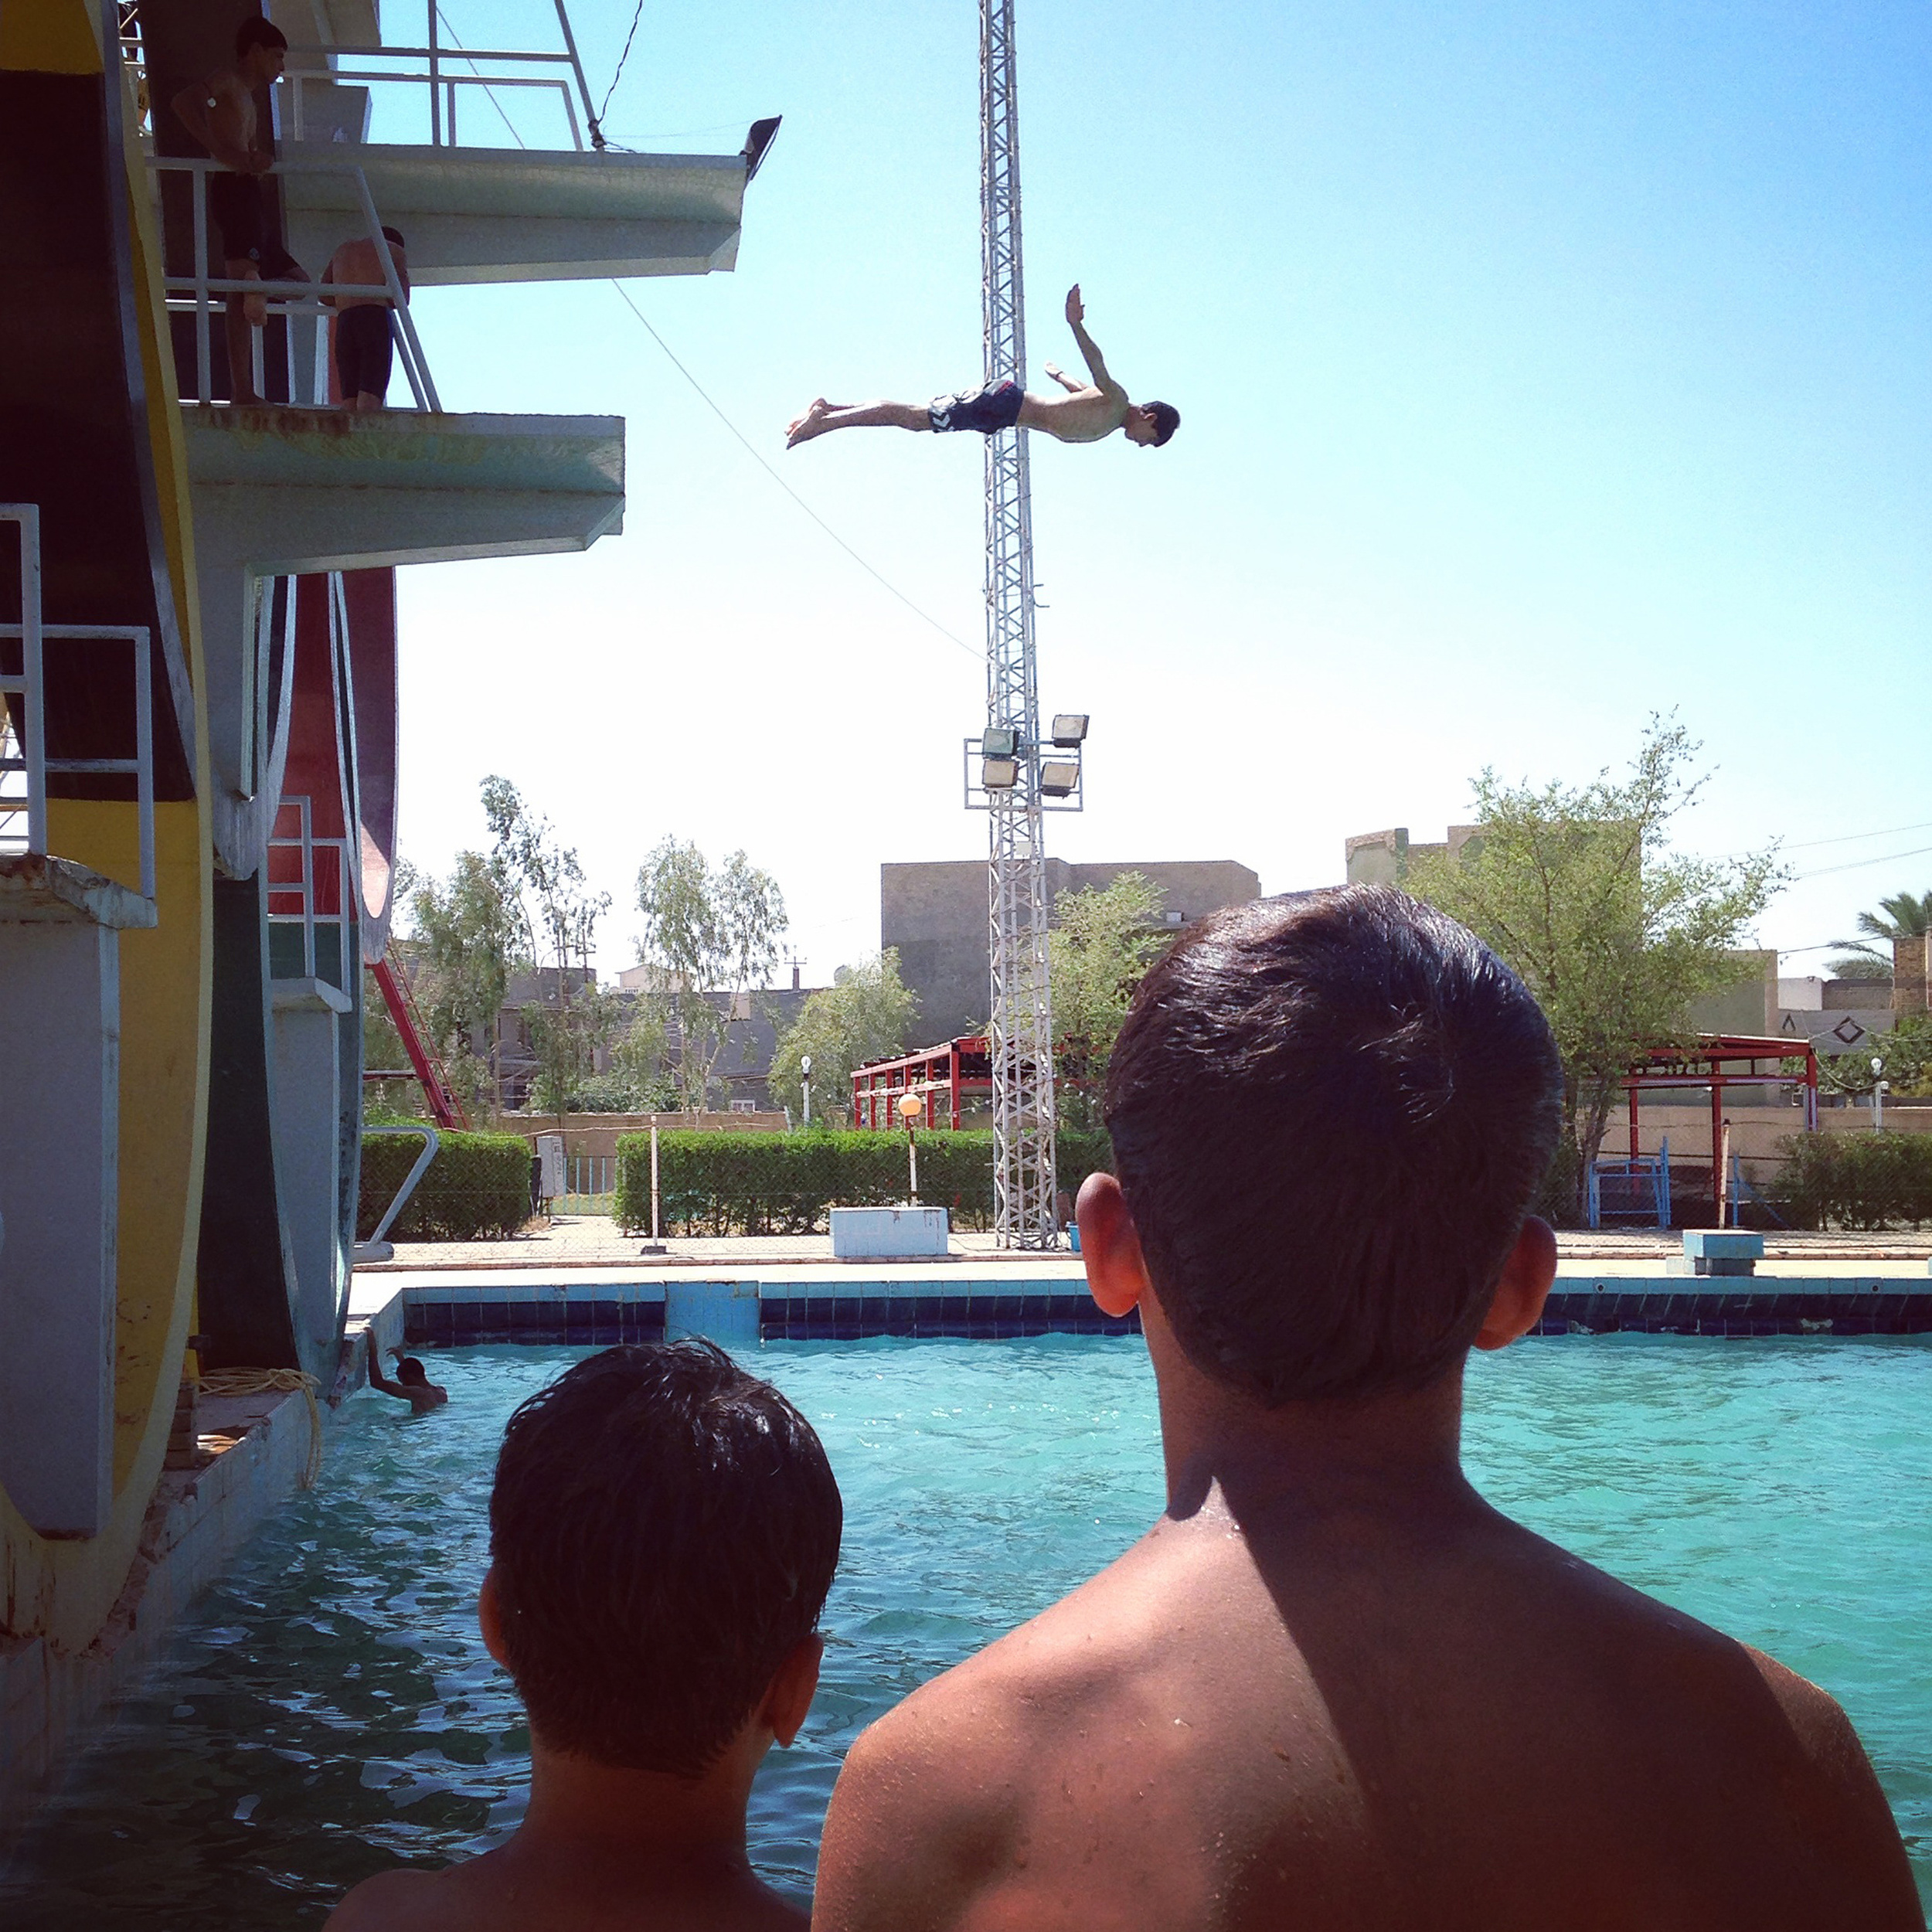 A young man jumps into a public swimming pool during a hot day in the city of Hilla, Babel, Iraq. (Ahmad Mousa)